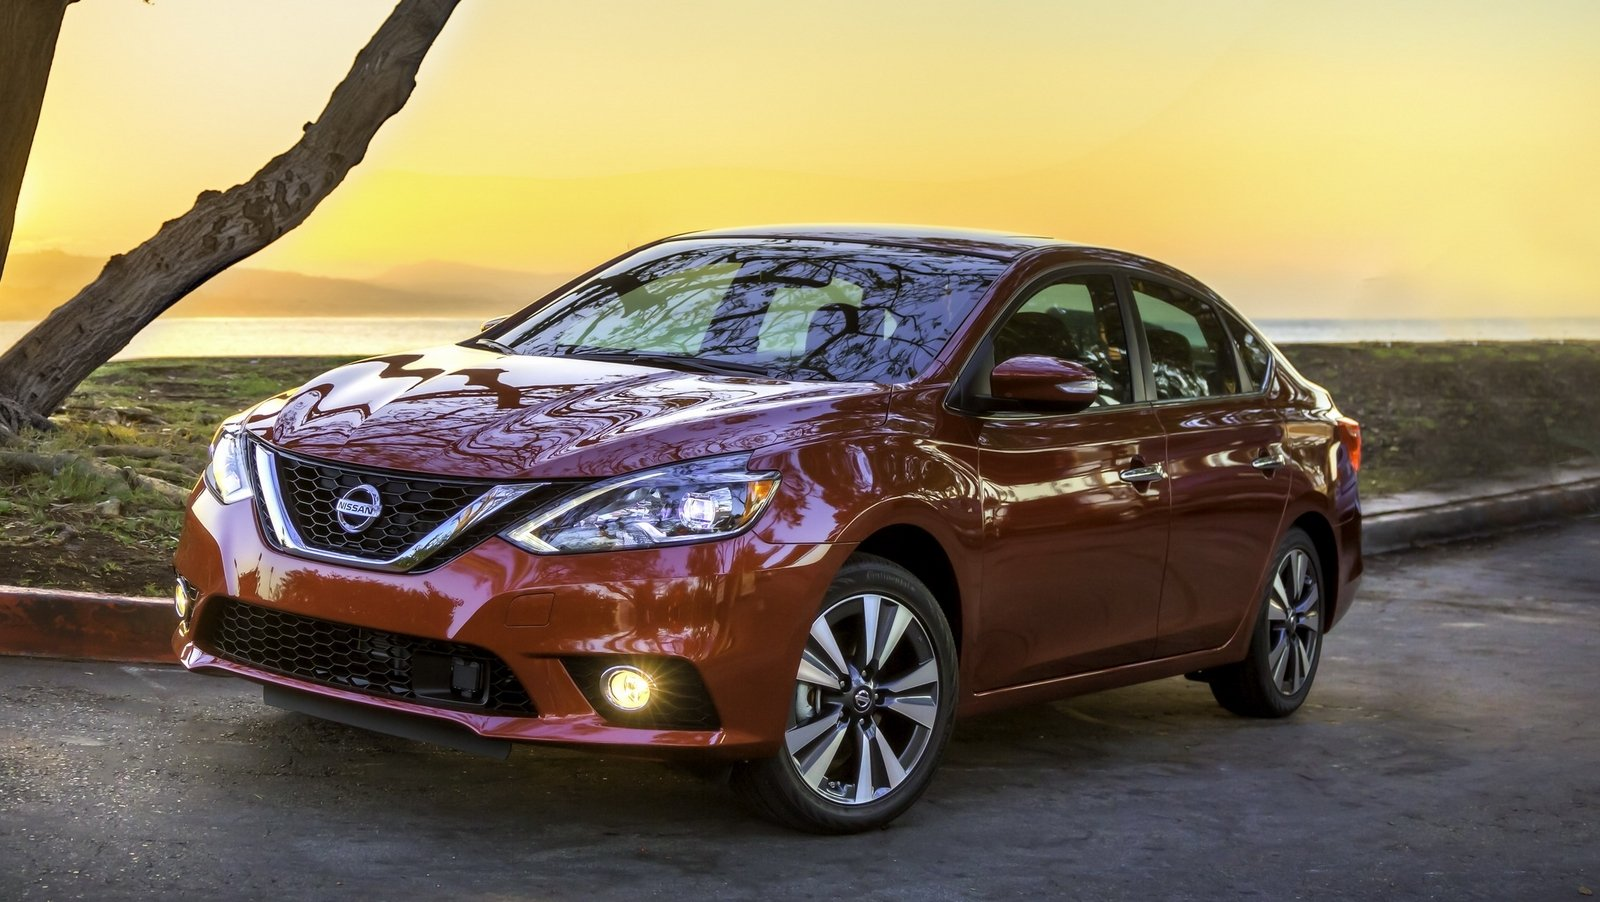 2016 nissan sentra picture 656206 car review top speed. Black Bedroom Furniture Sets. Home Design Ideas